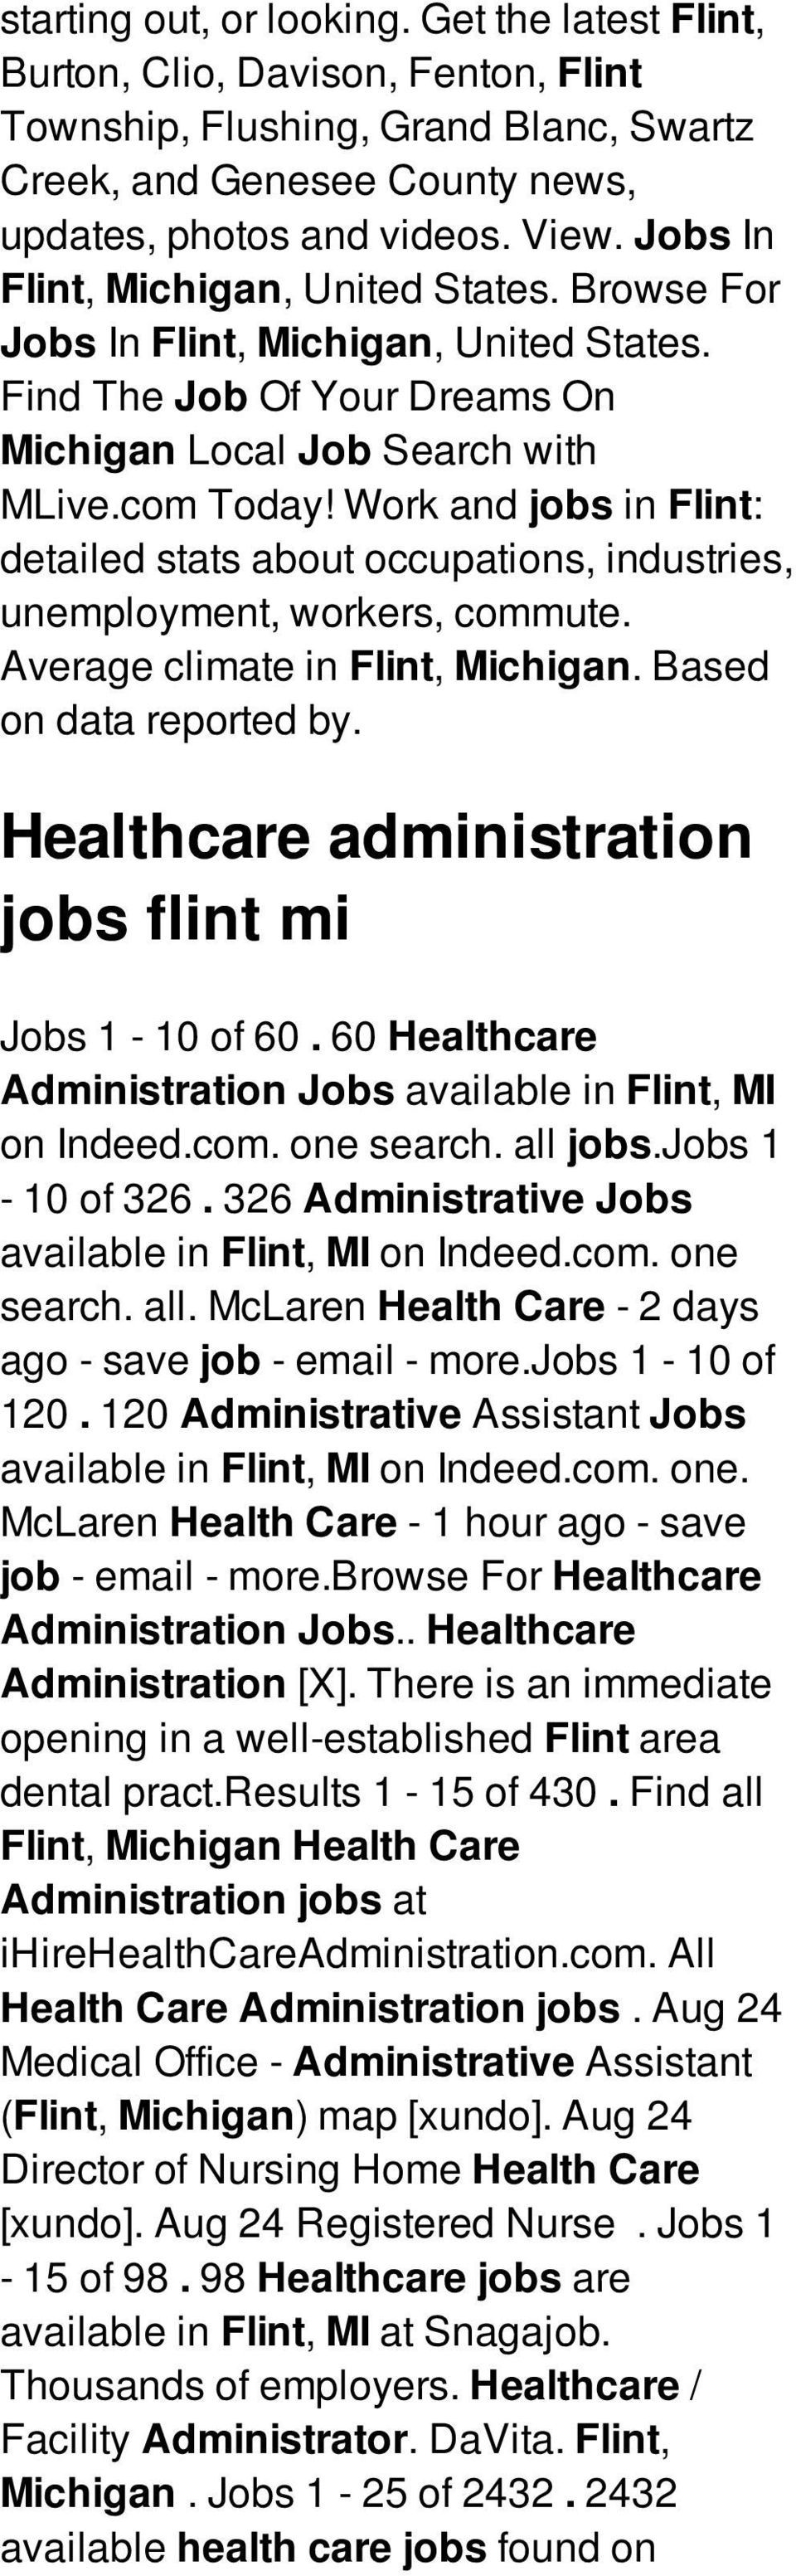 Work and jobs in Flint: detailed stats about occupations, industries, unemployment, workers, commute. Average climate in Flint, Michigan. Based on data reported by.